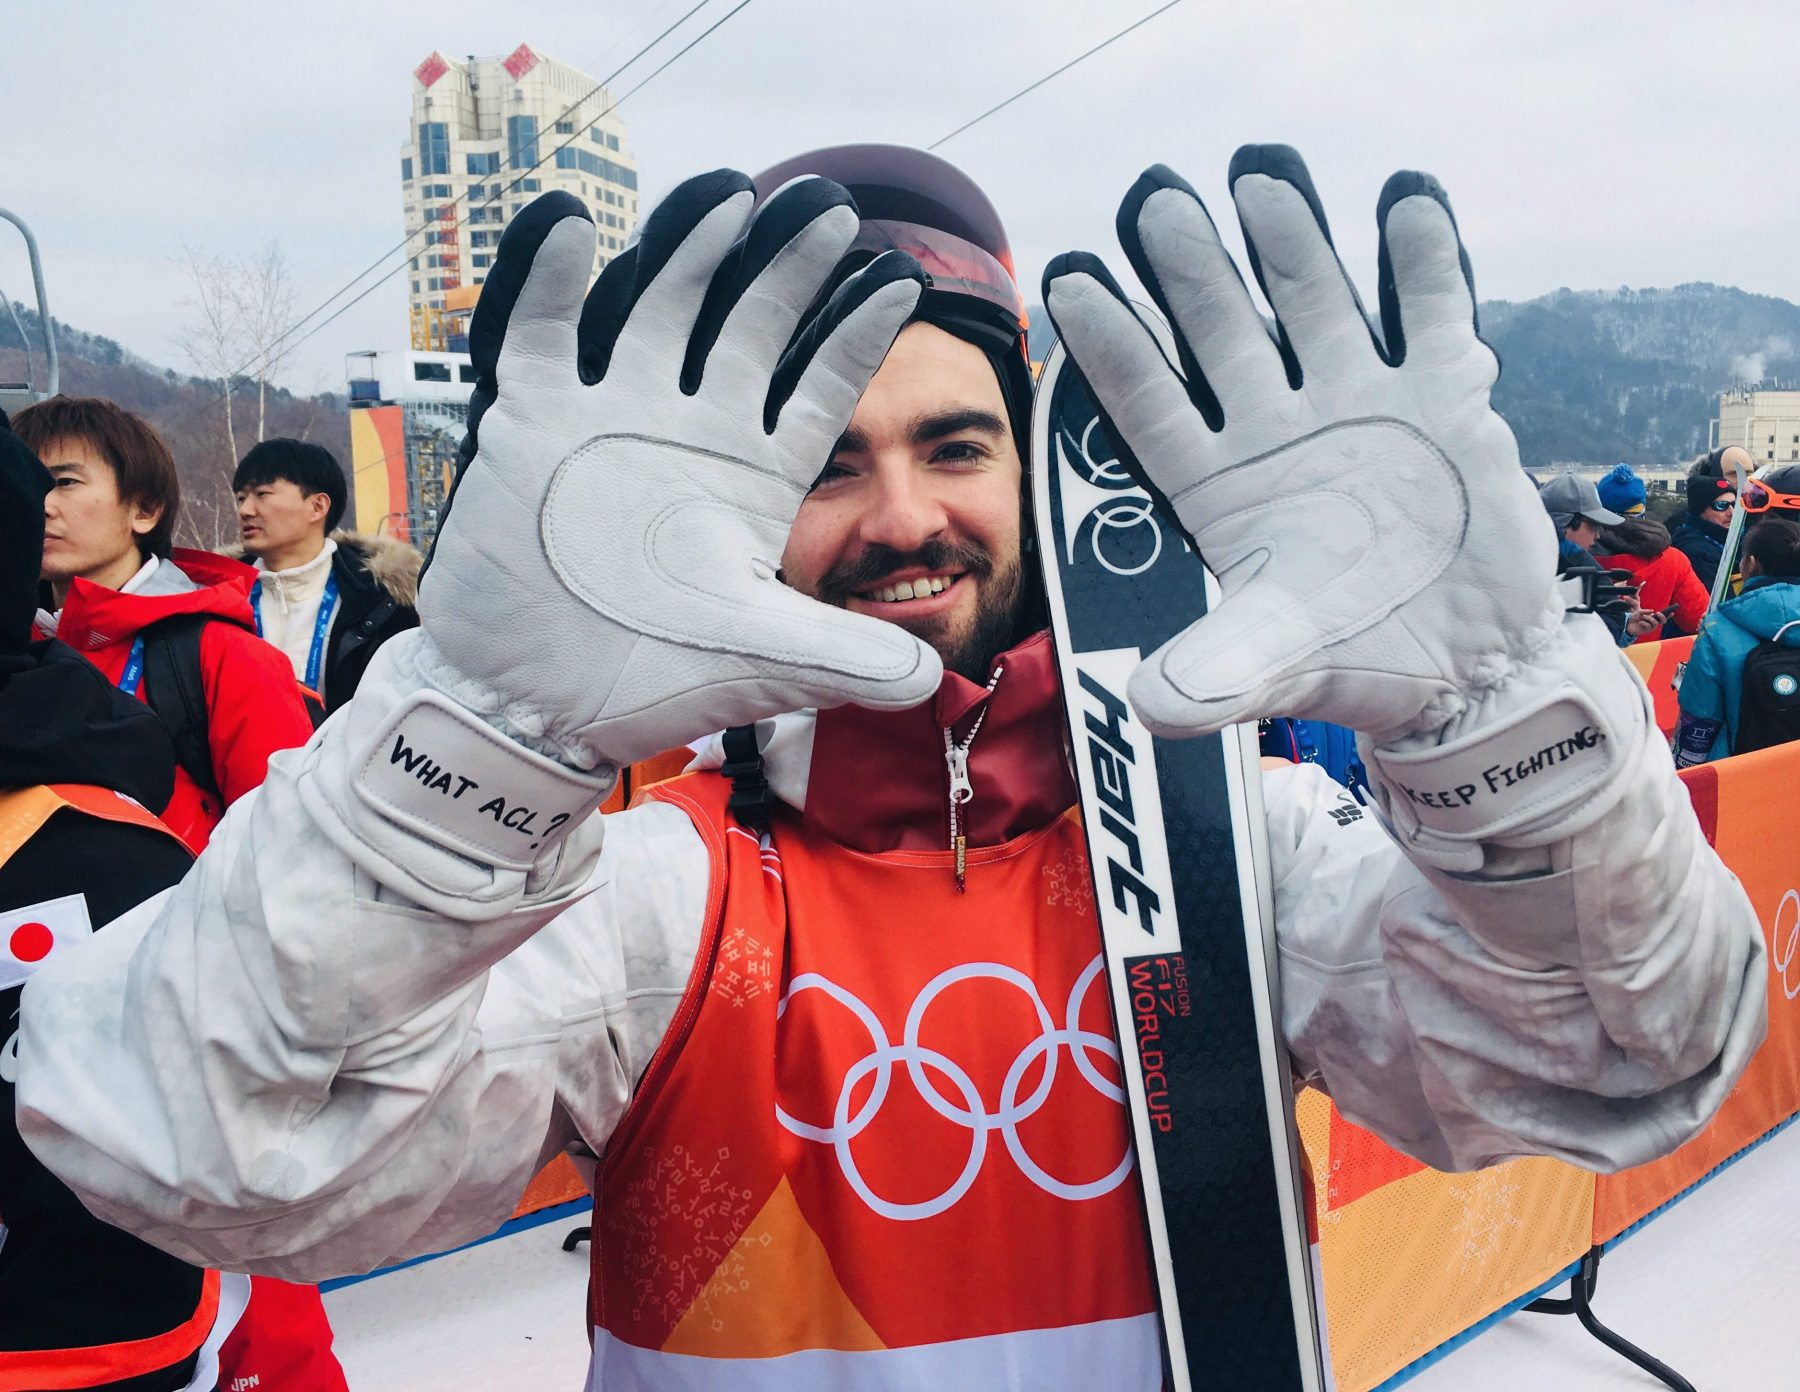 Skier holds up gloves to camera